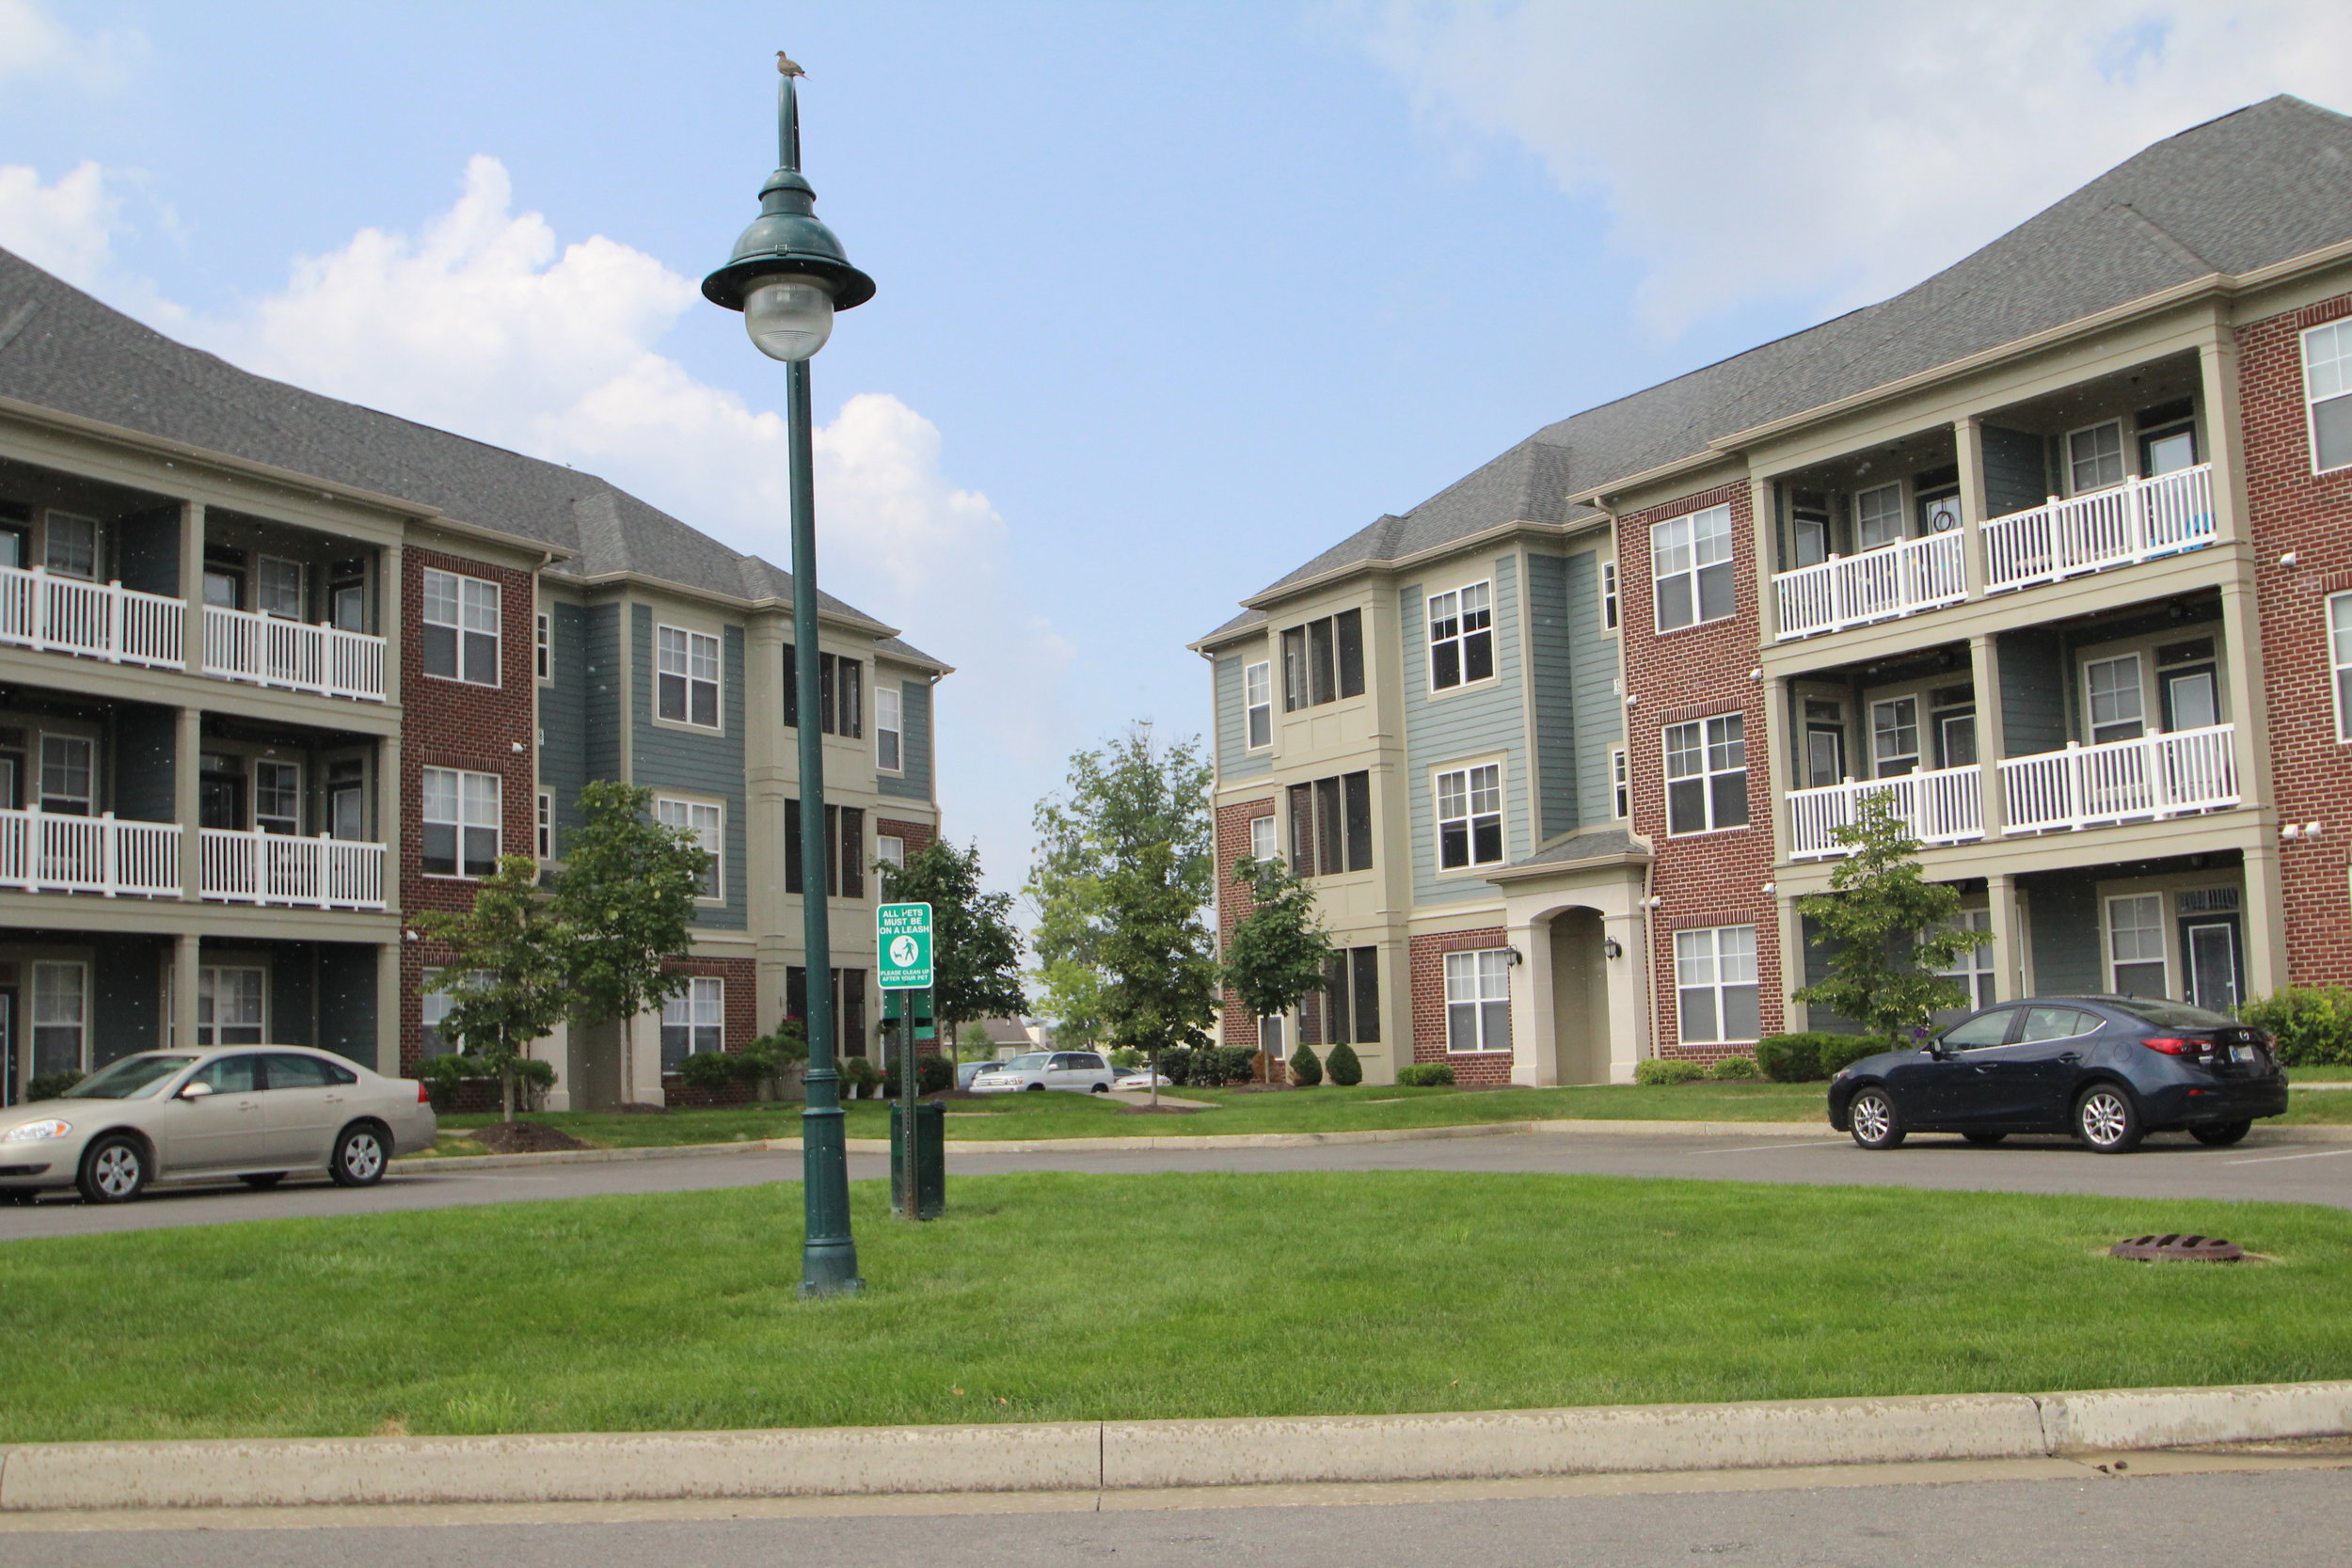 Apartments in Fishers The District two apartment buildings.JPG